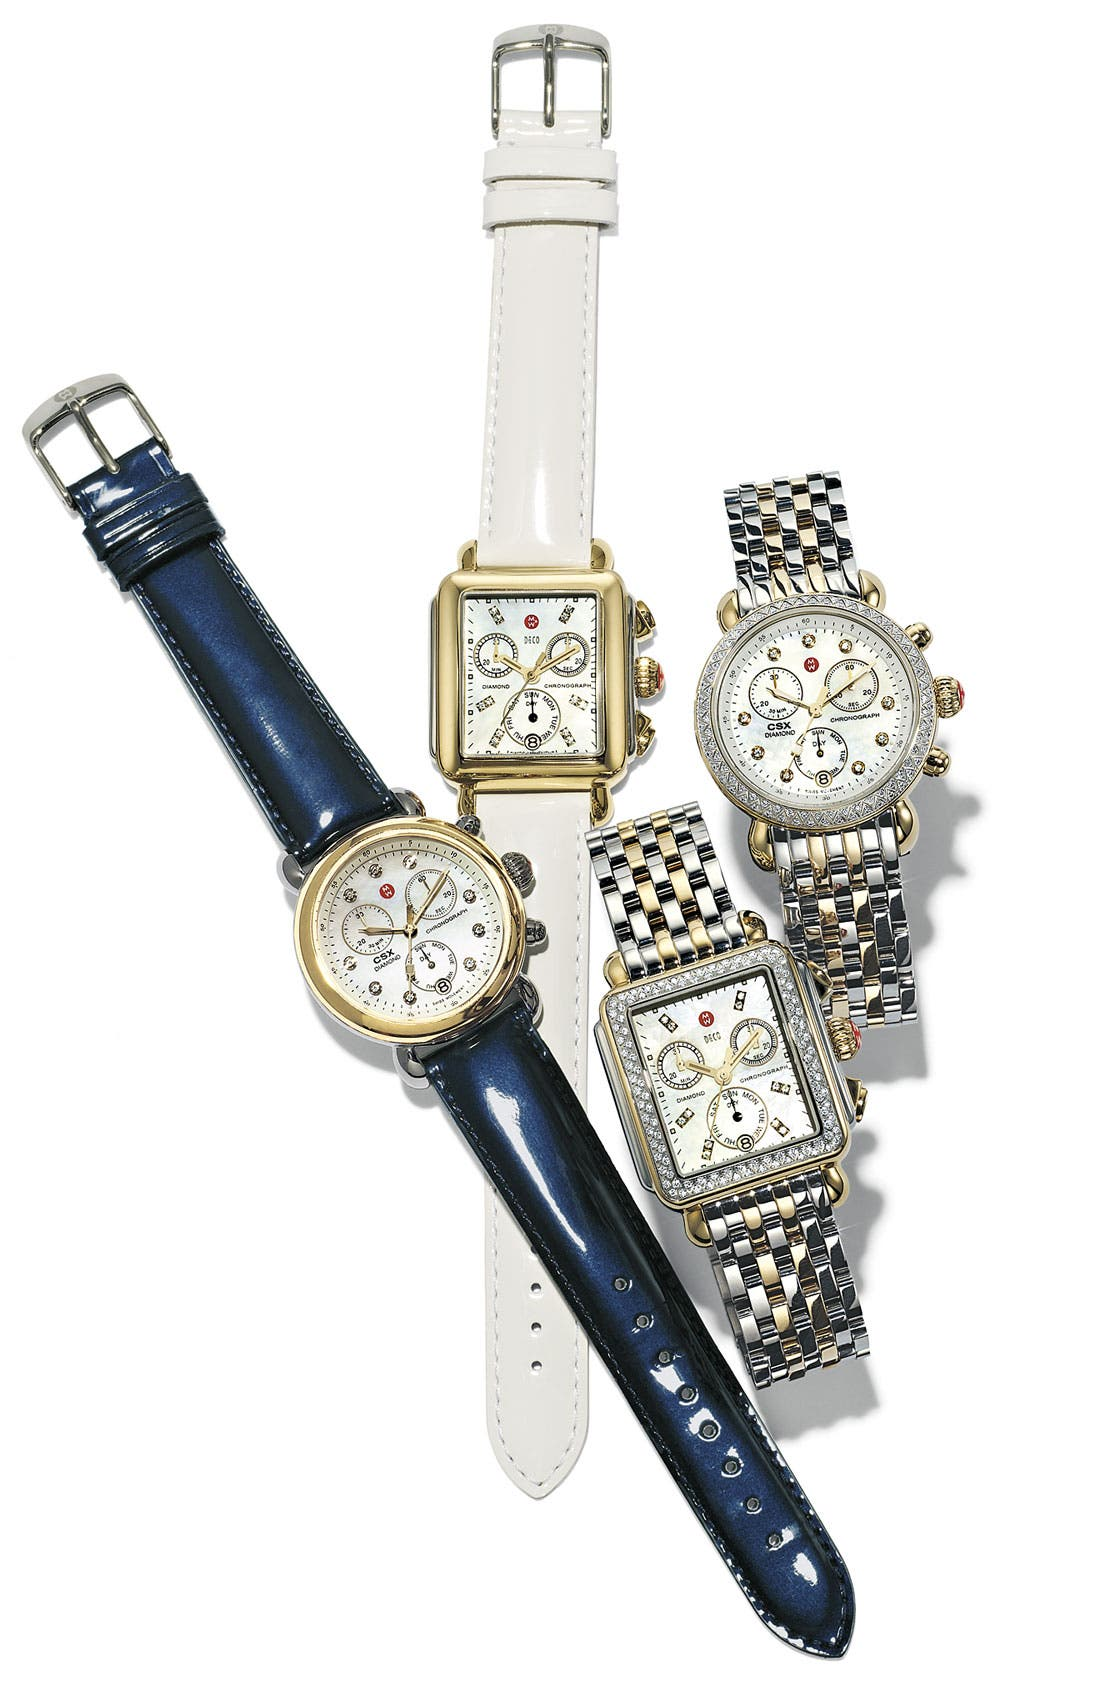 Main Image - MICHELE 'CSX-36' Diamond Dial Two-Tone Watch Case & 18mm Navy Patent Leather Strap